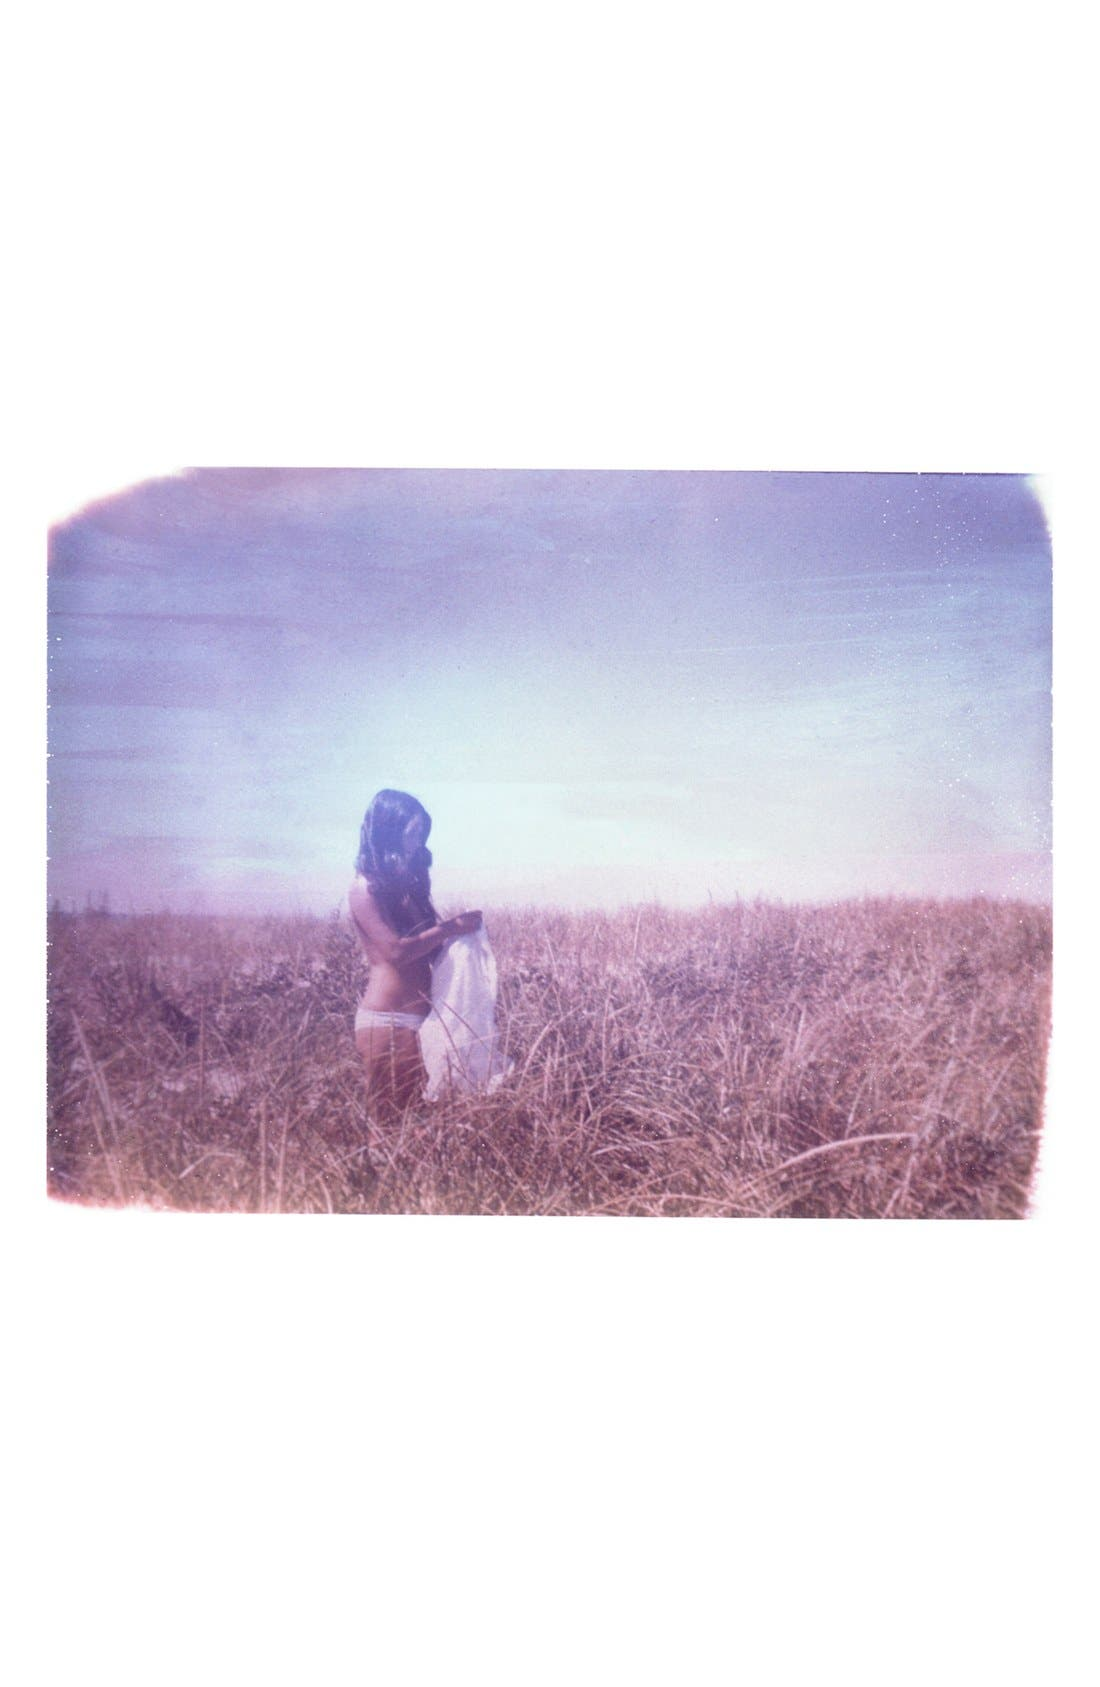 Main Image - She Hit Pause Studios 'Girl in Field' Wall Art